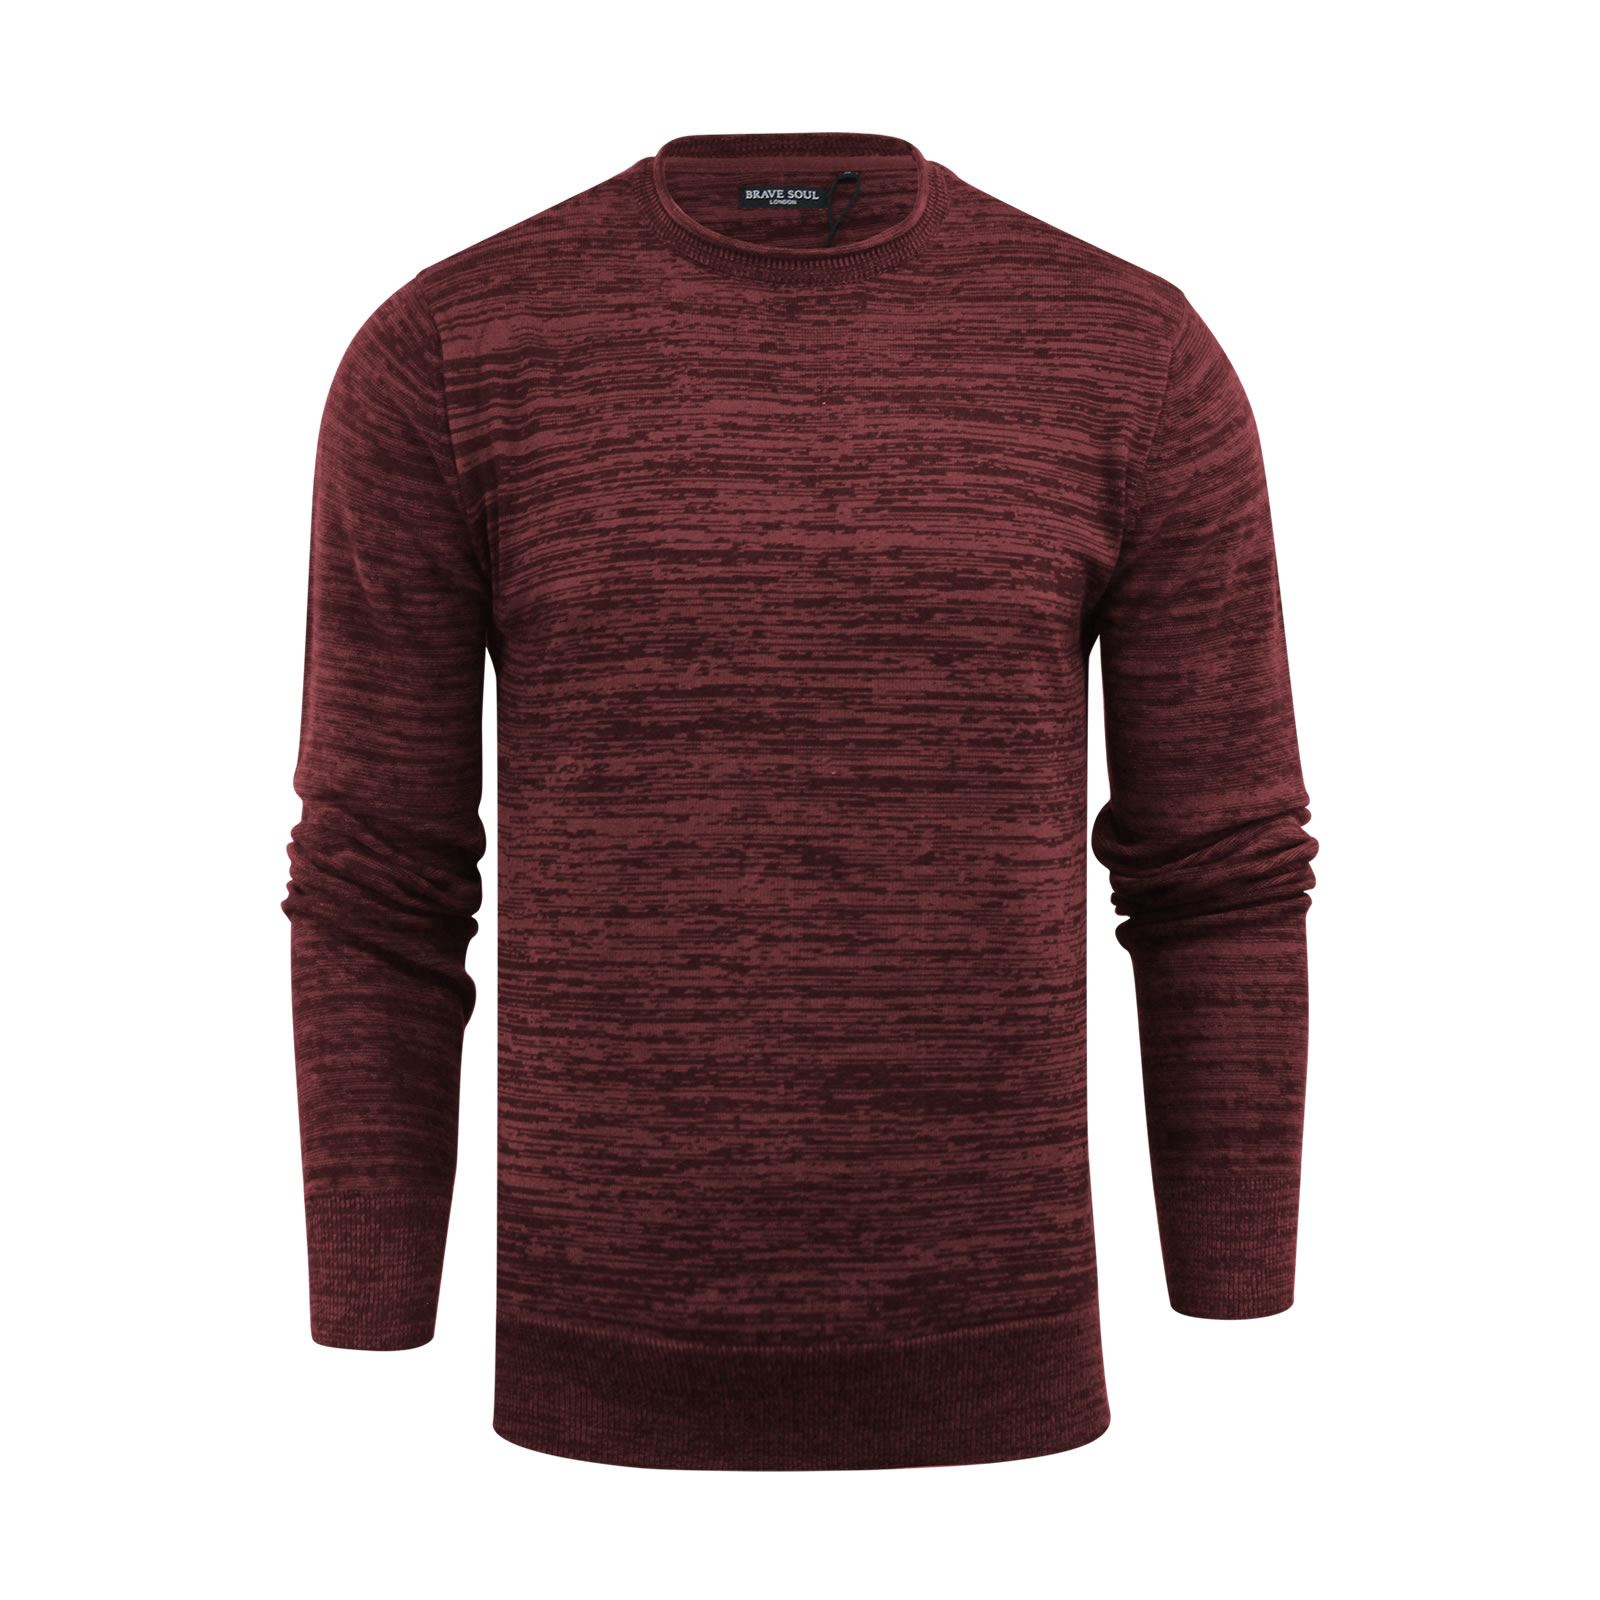 Mens-Jumper-Brave-Soul-Knitted-Sweater-In-Various-Styles thumbnail 8